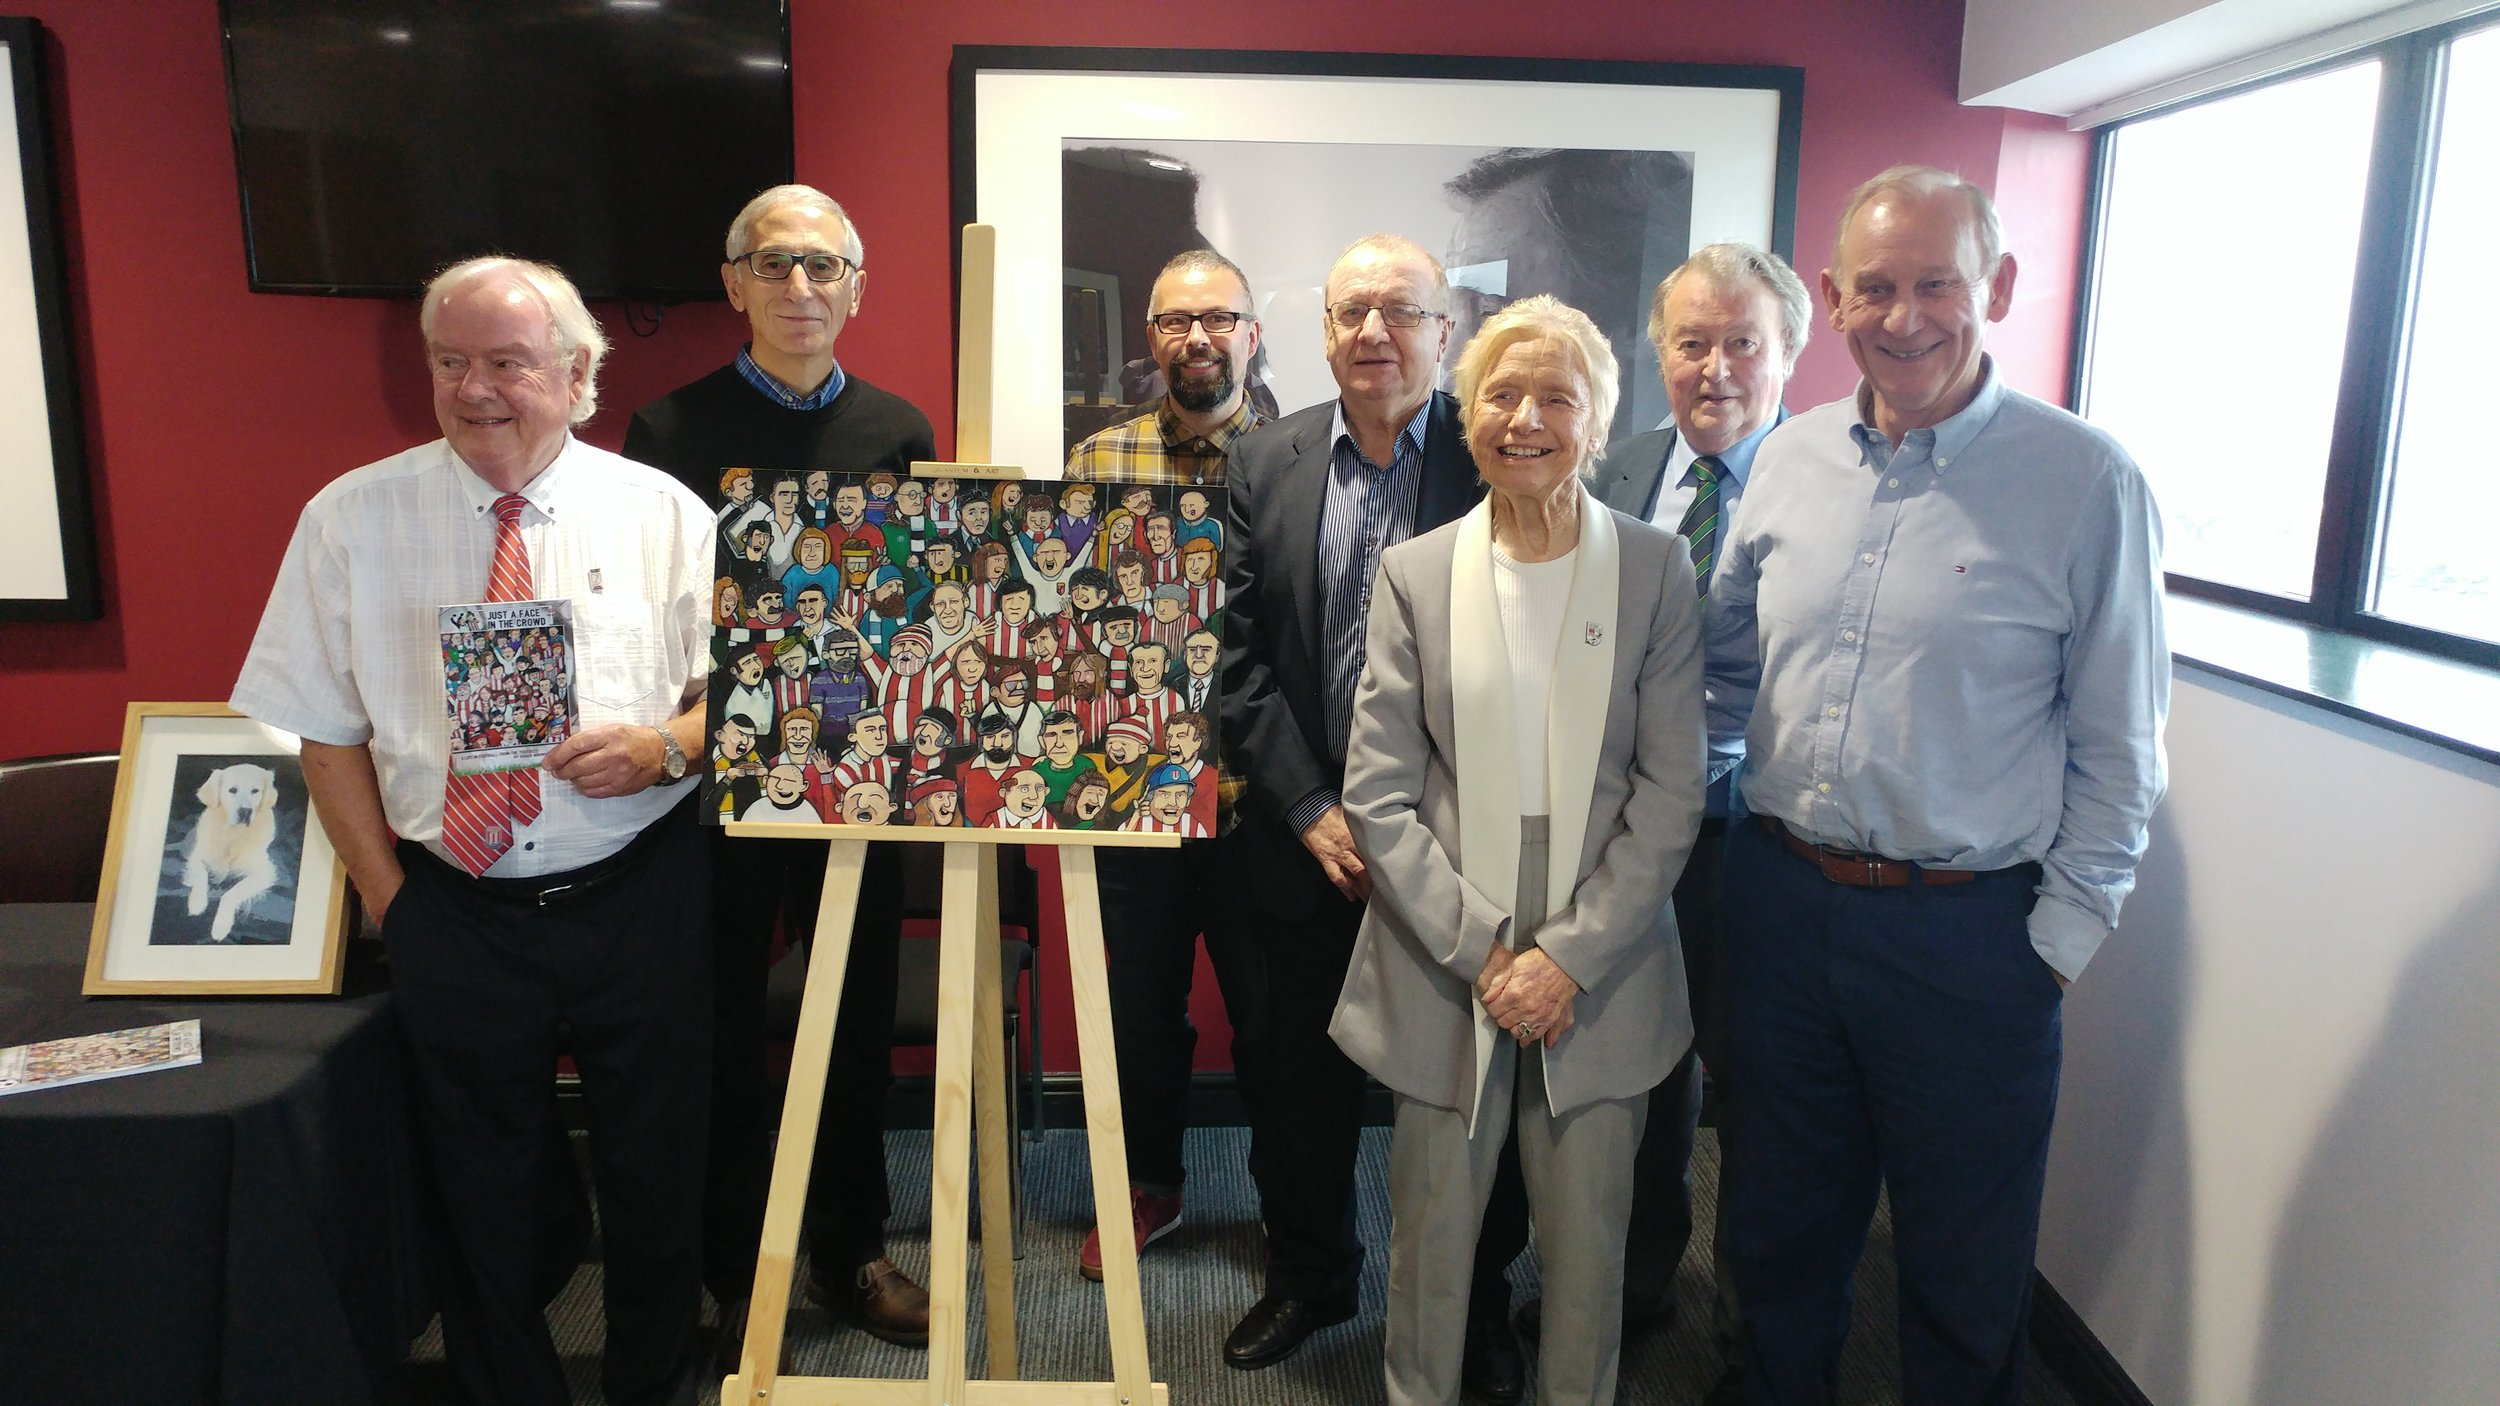 (l-r) Roger Horwood, John Ruggerio, Gaz Williams, Terry Conroy, Jean Gough, Nigel Johnson and Denis Smith, with the original painting fro the cover artwork.